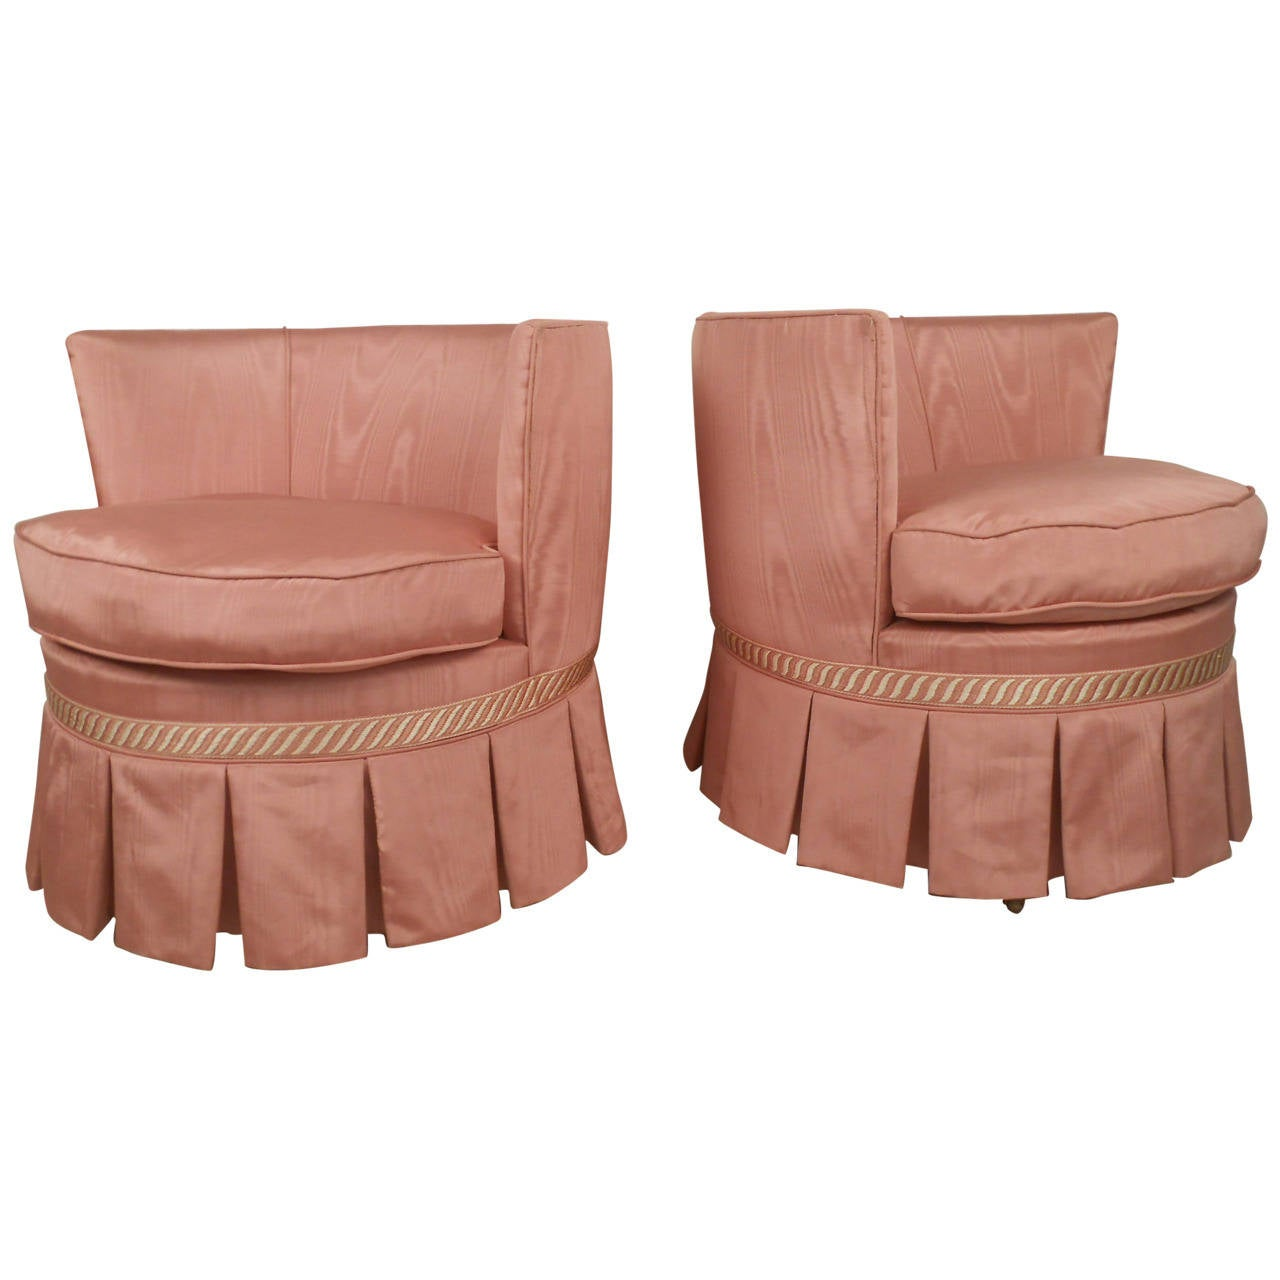 Pair Barrel Back Side Chairs on Casters